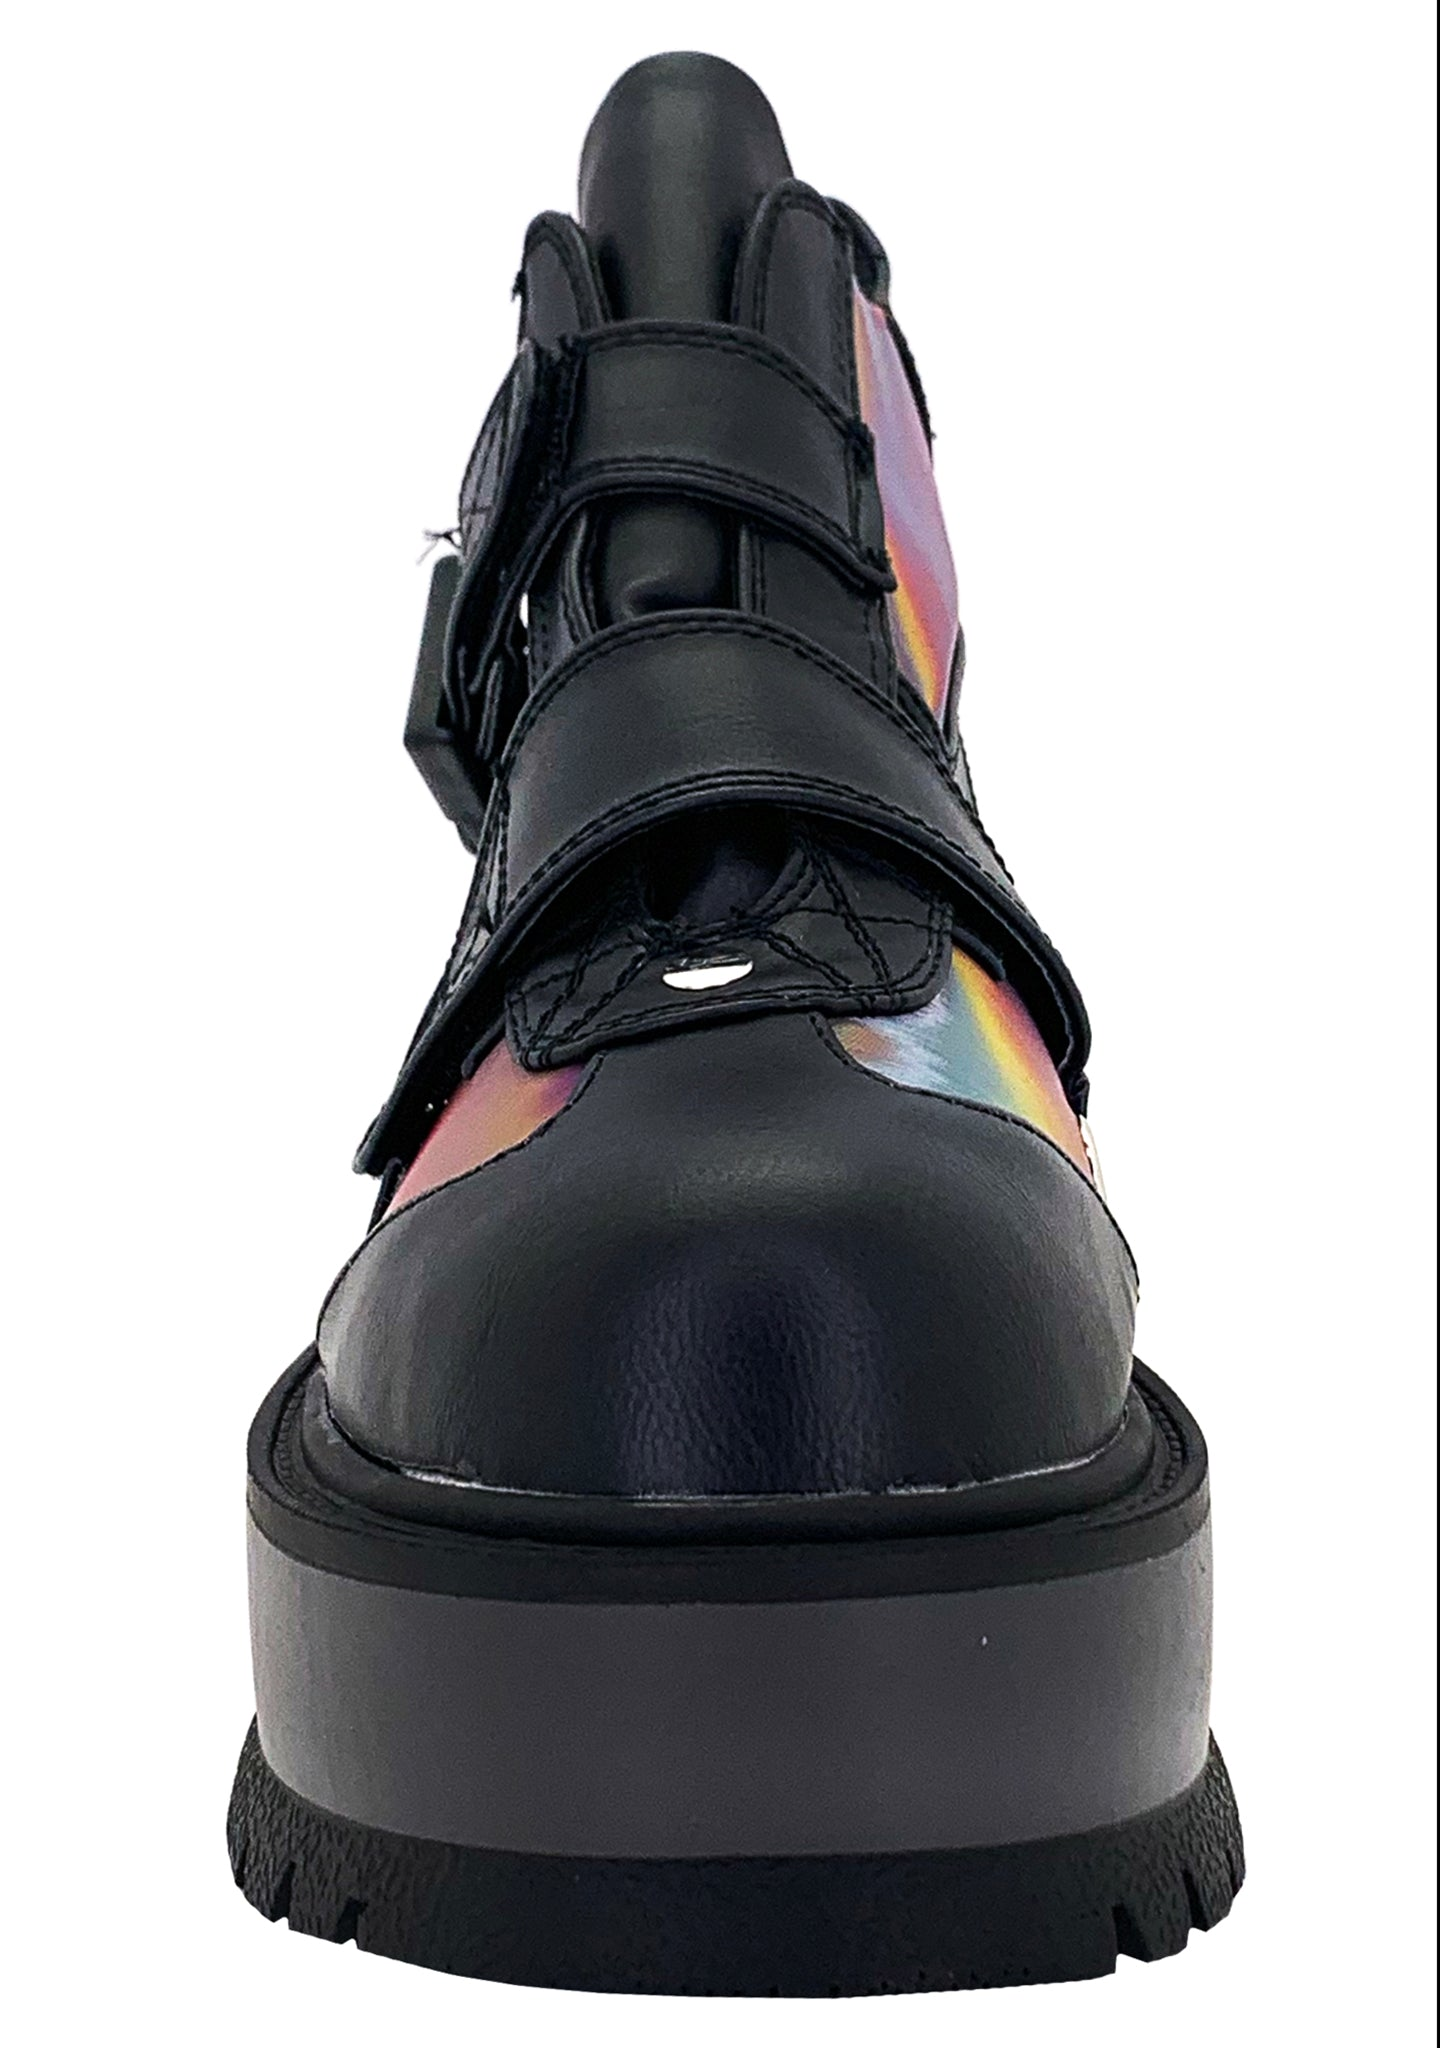 Prismatic Abstract Lenticular Platform Boots